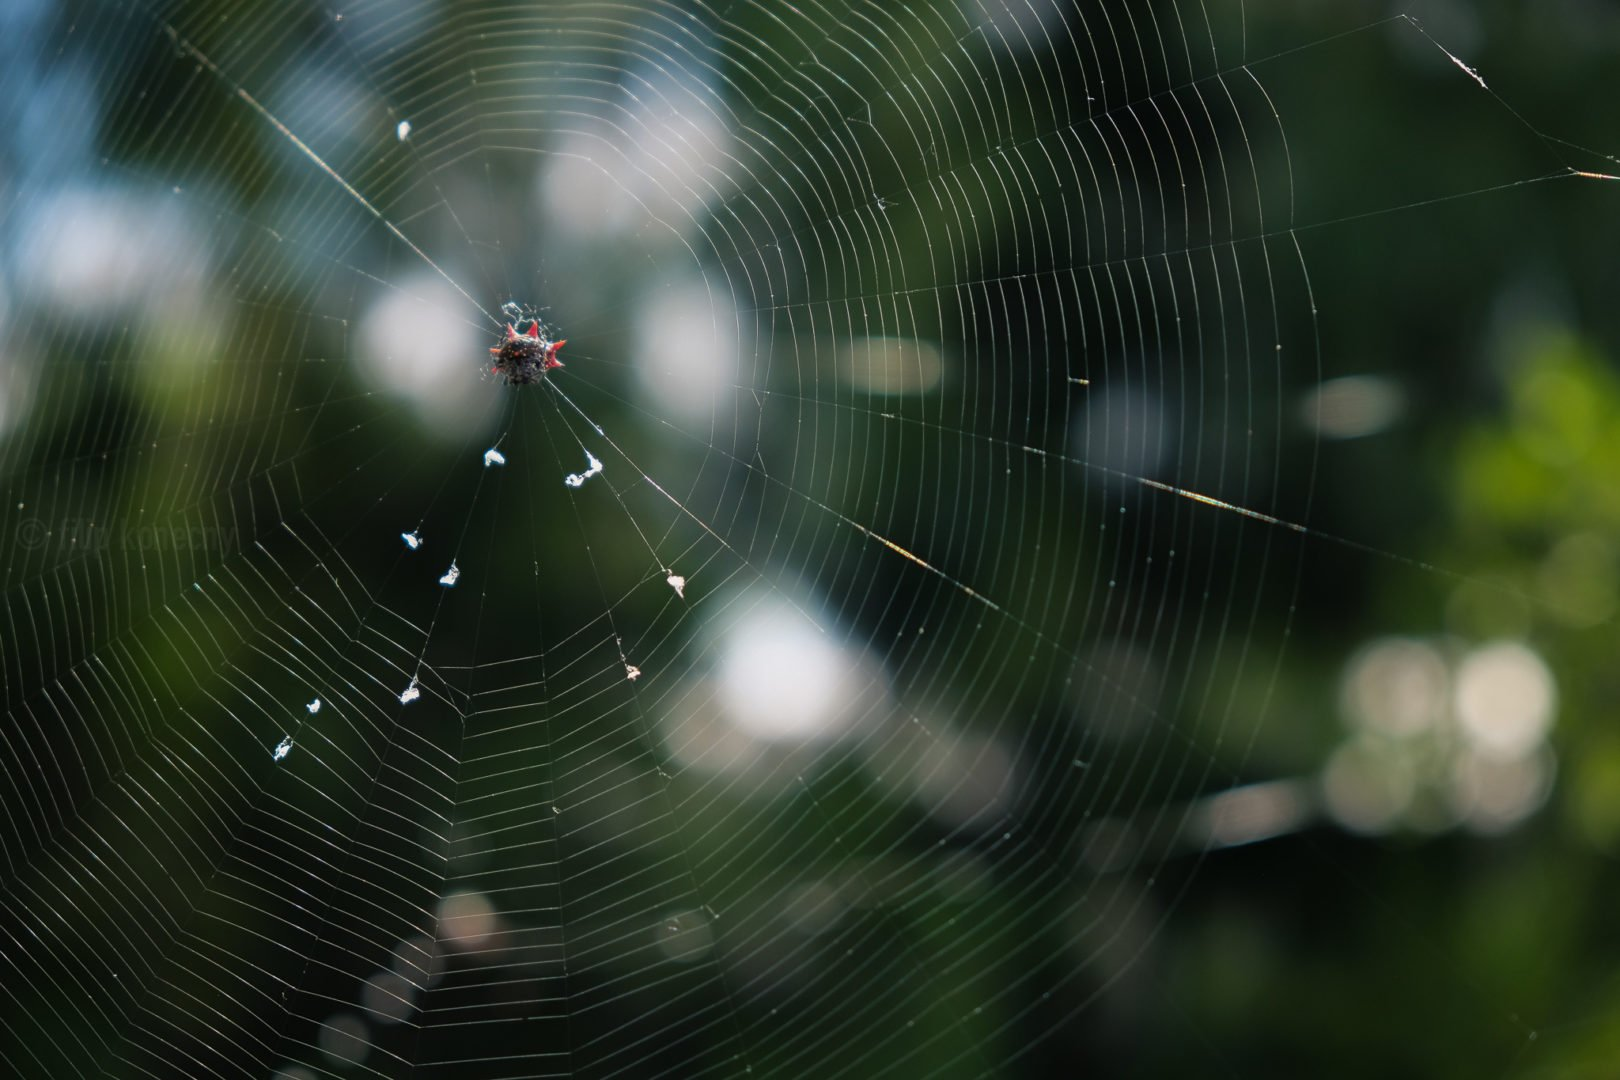 spiny orb weaver on his web